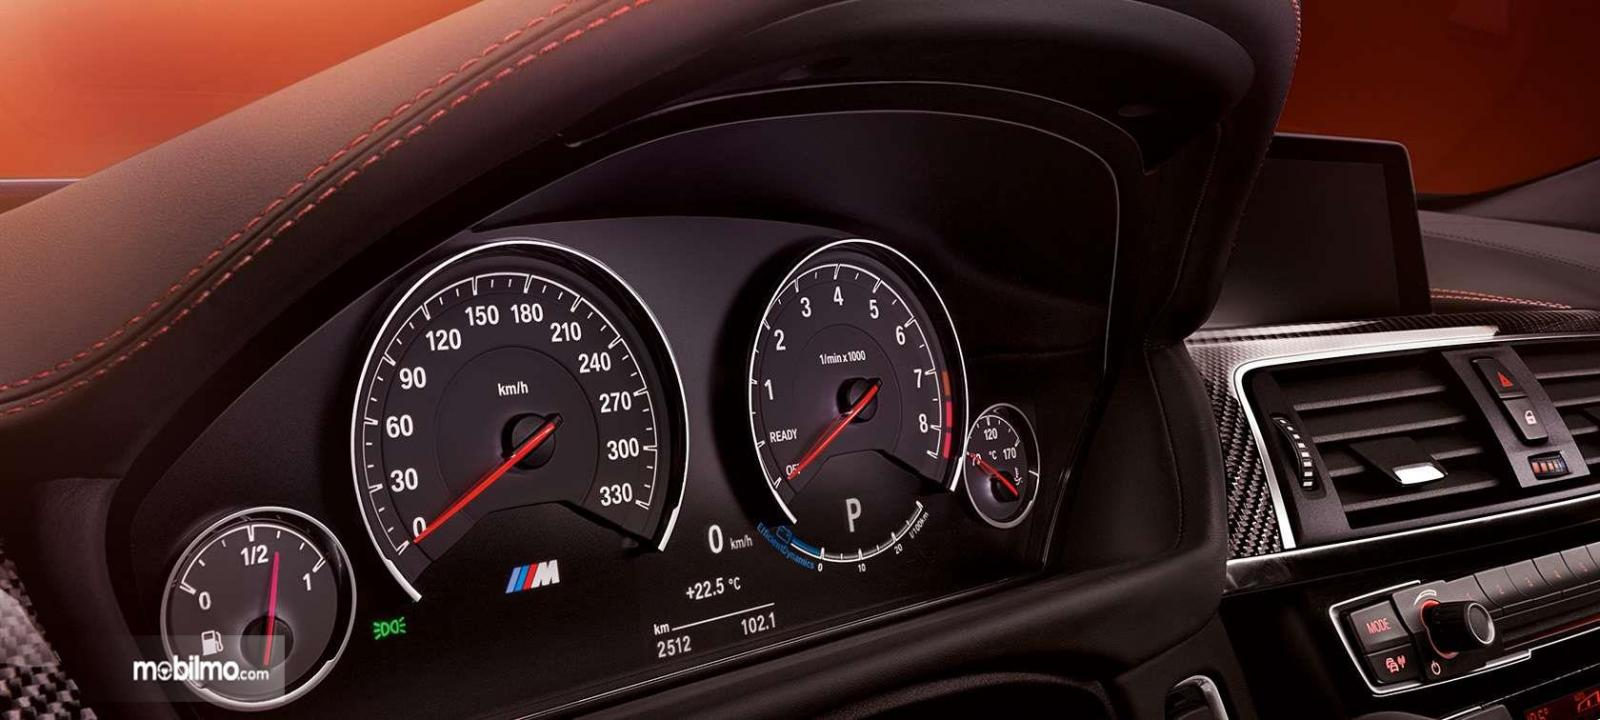 Foto Dashboard BMW M4 Coupé